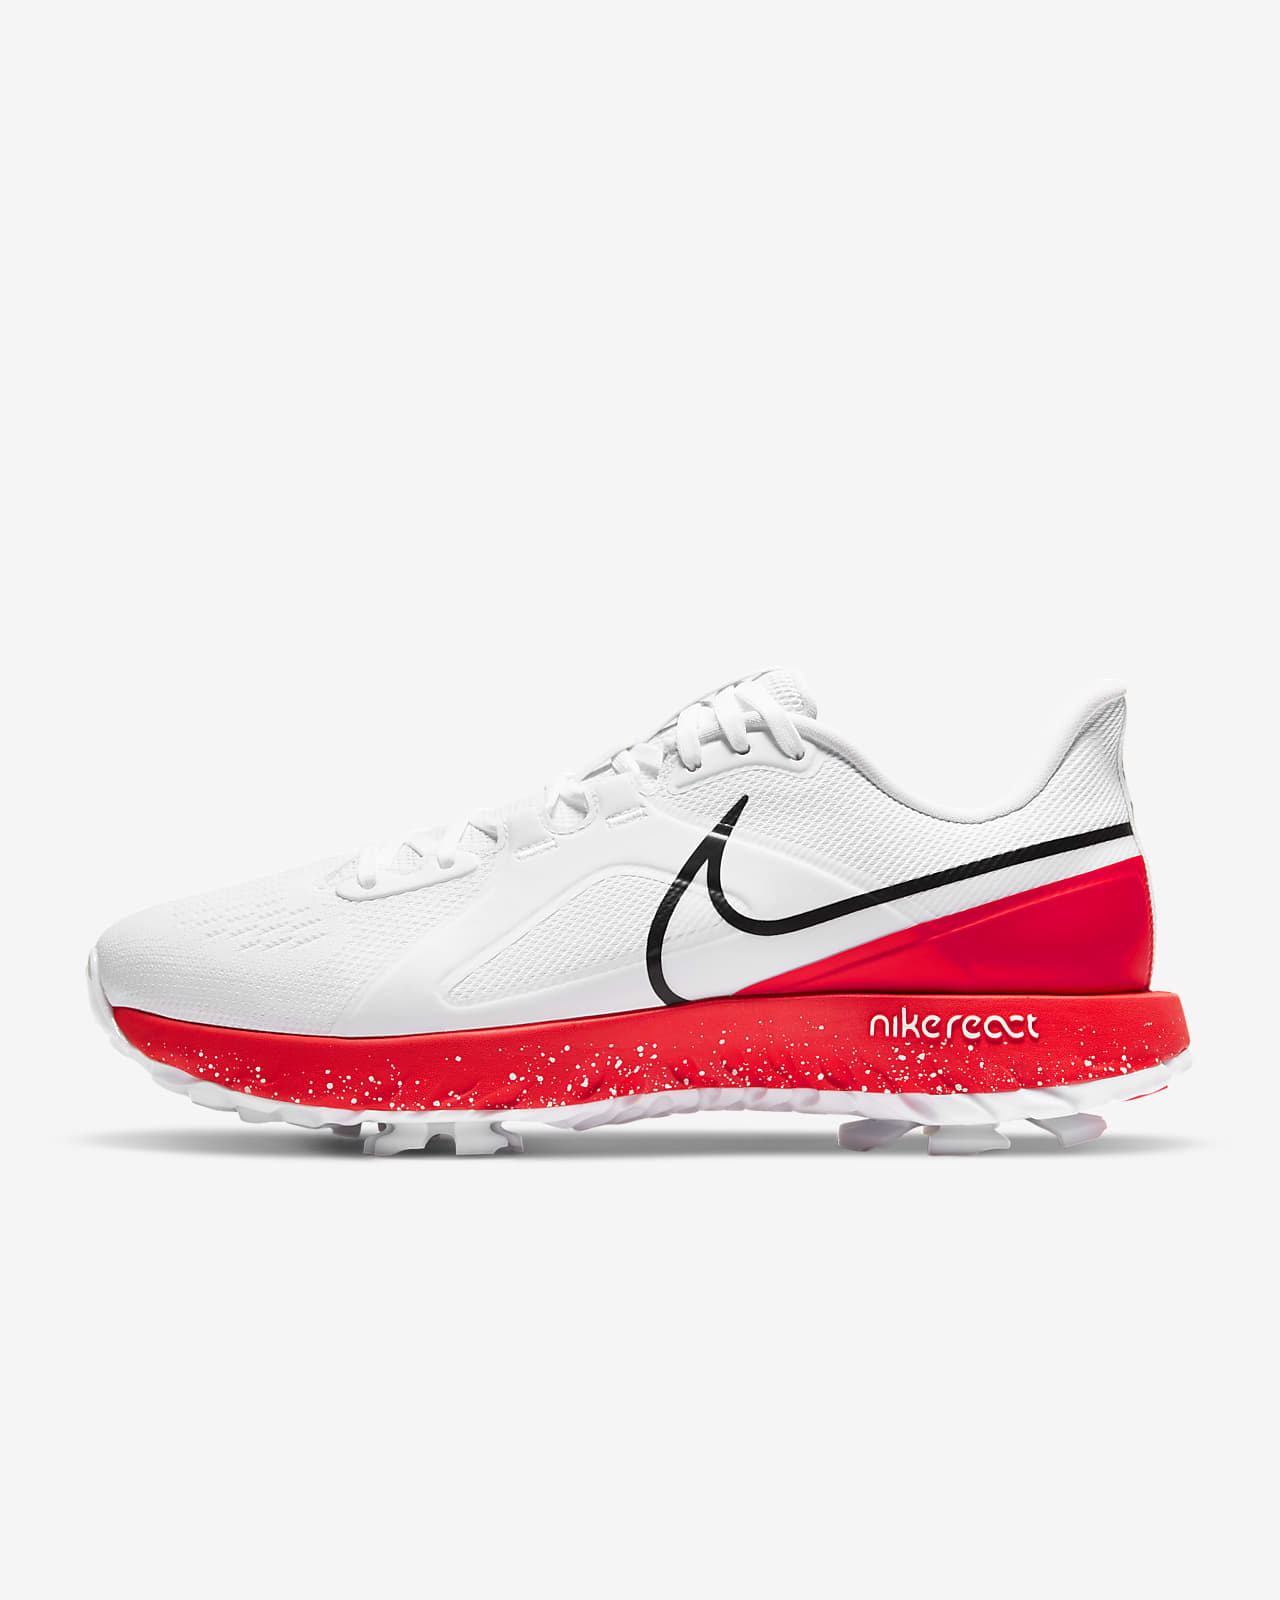 Nike React Infinity Pro Golf Shoes (Wide)